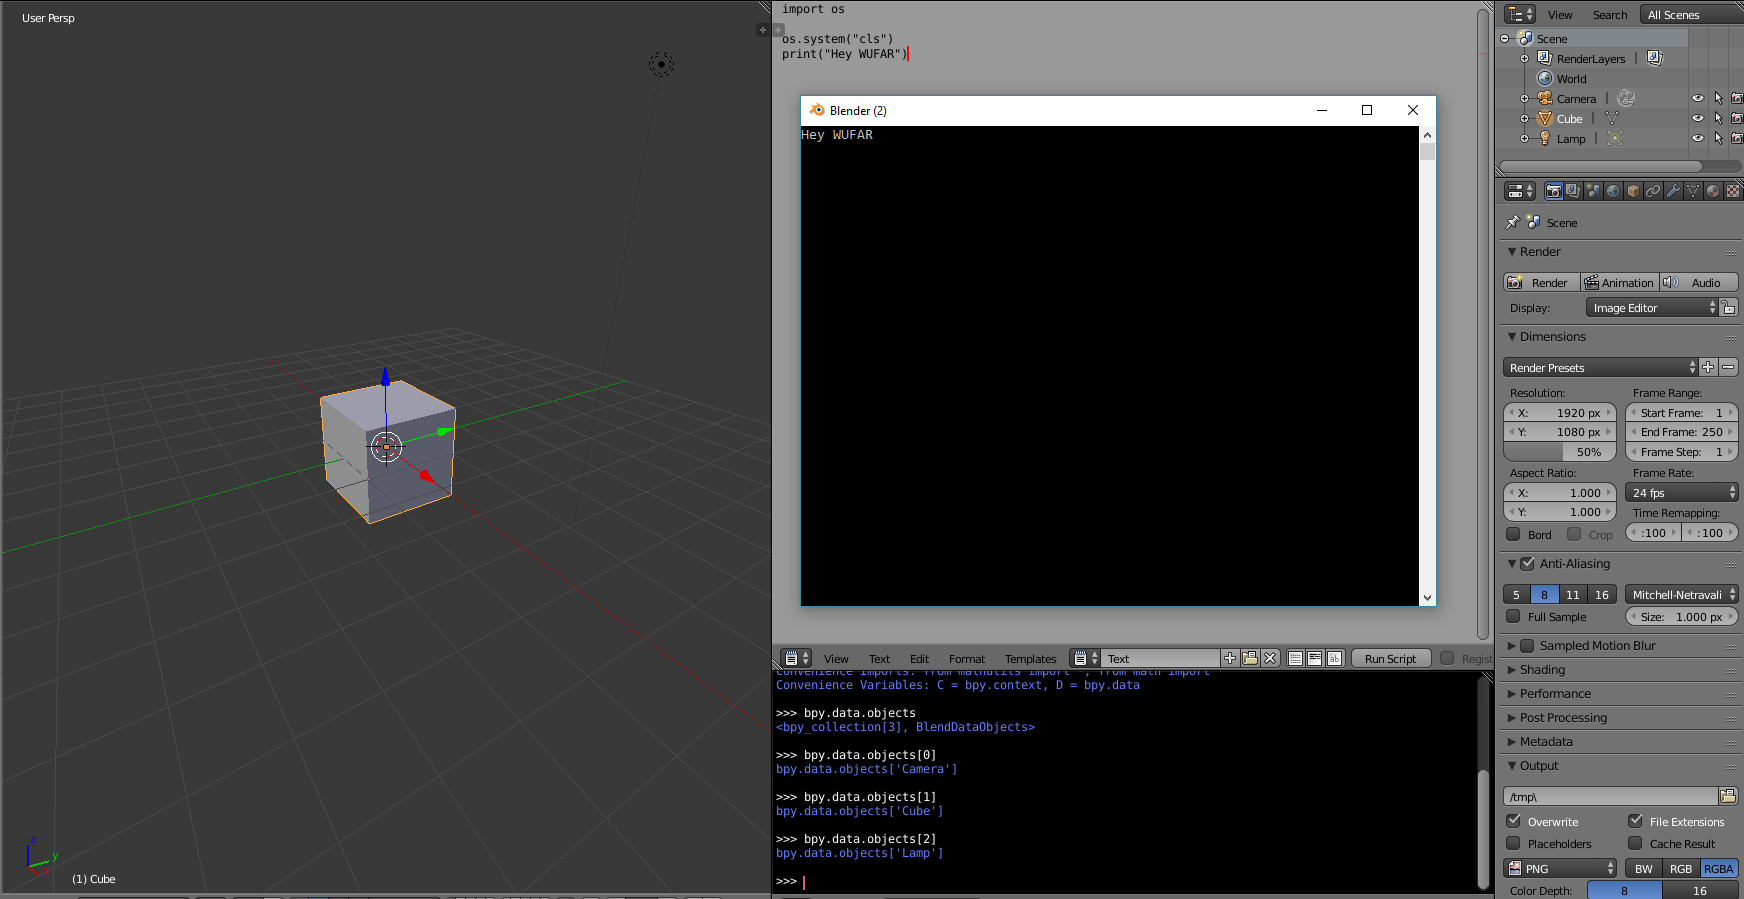 02 – Visualizing a Rubik's solver in 3D using the Blender